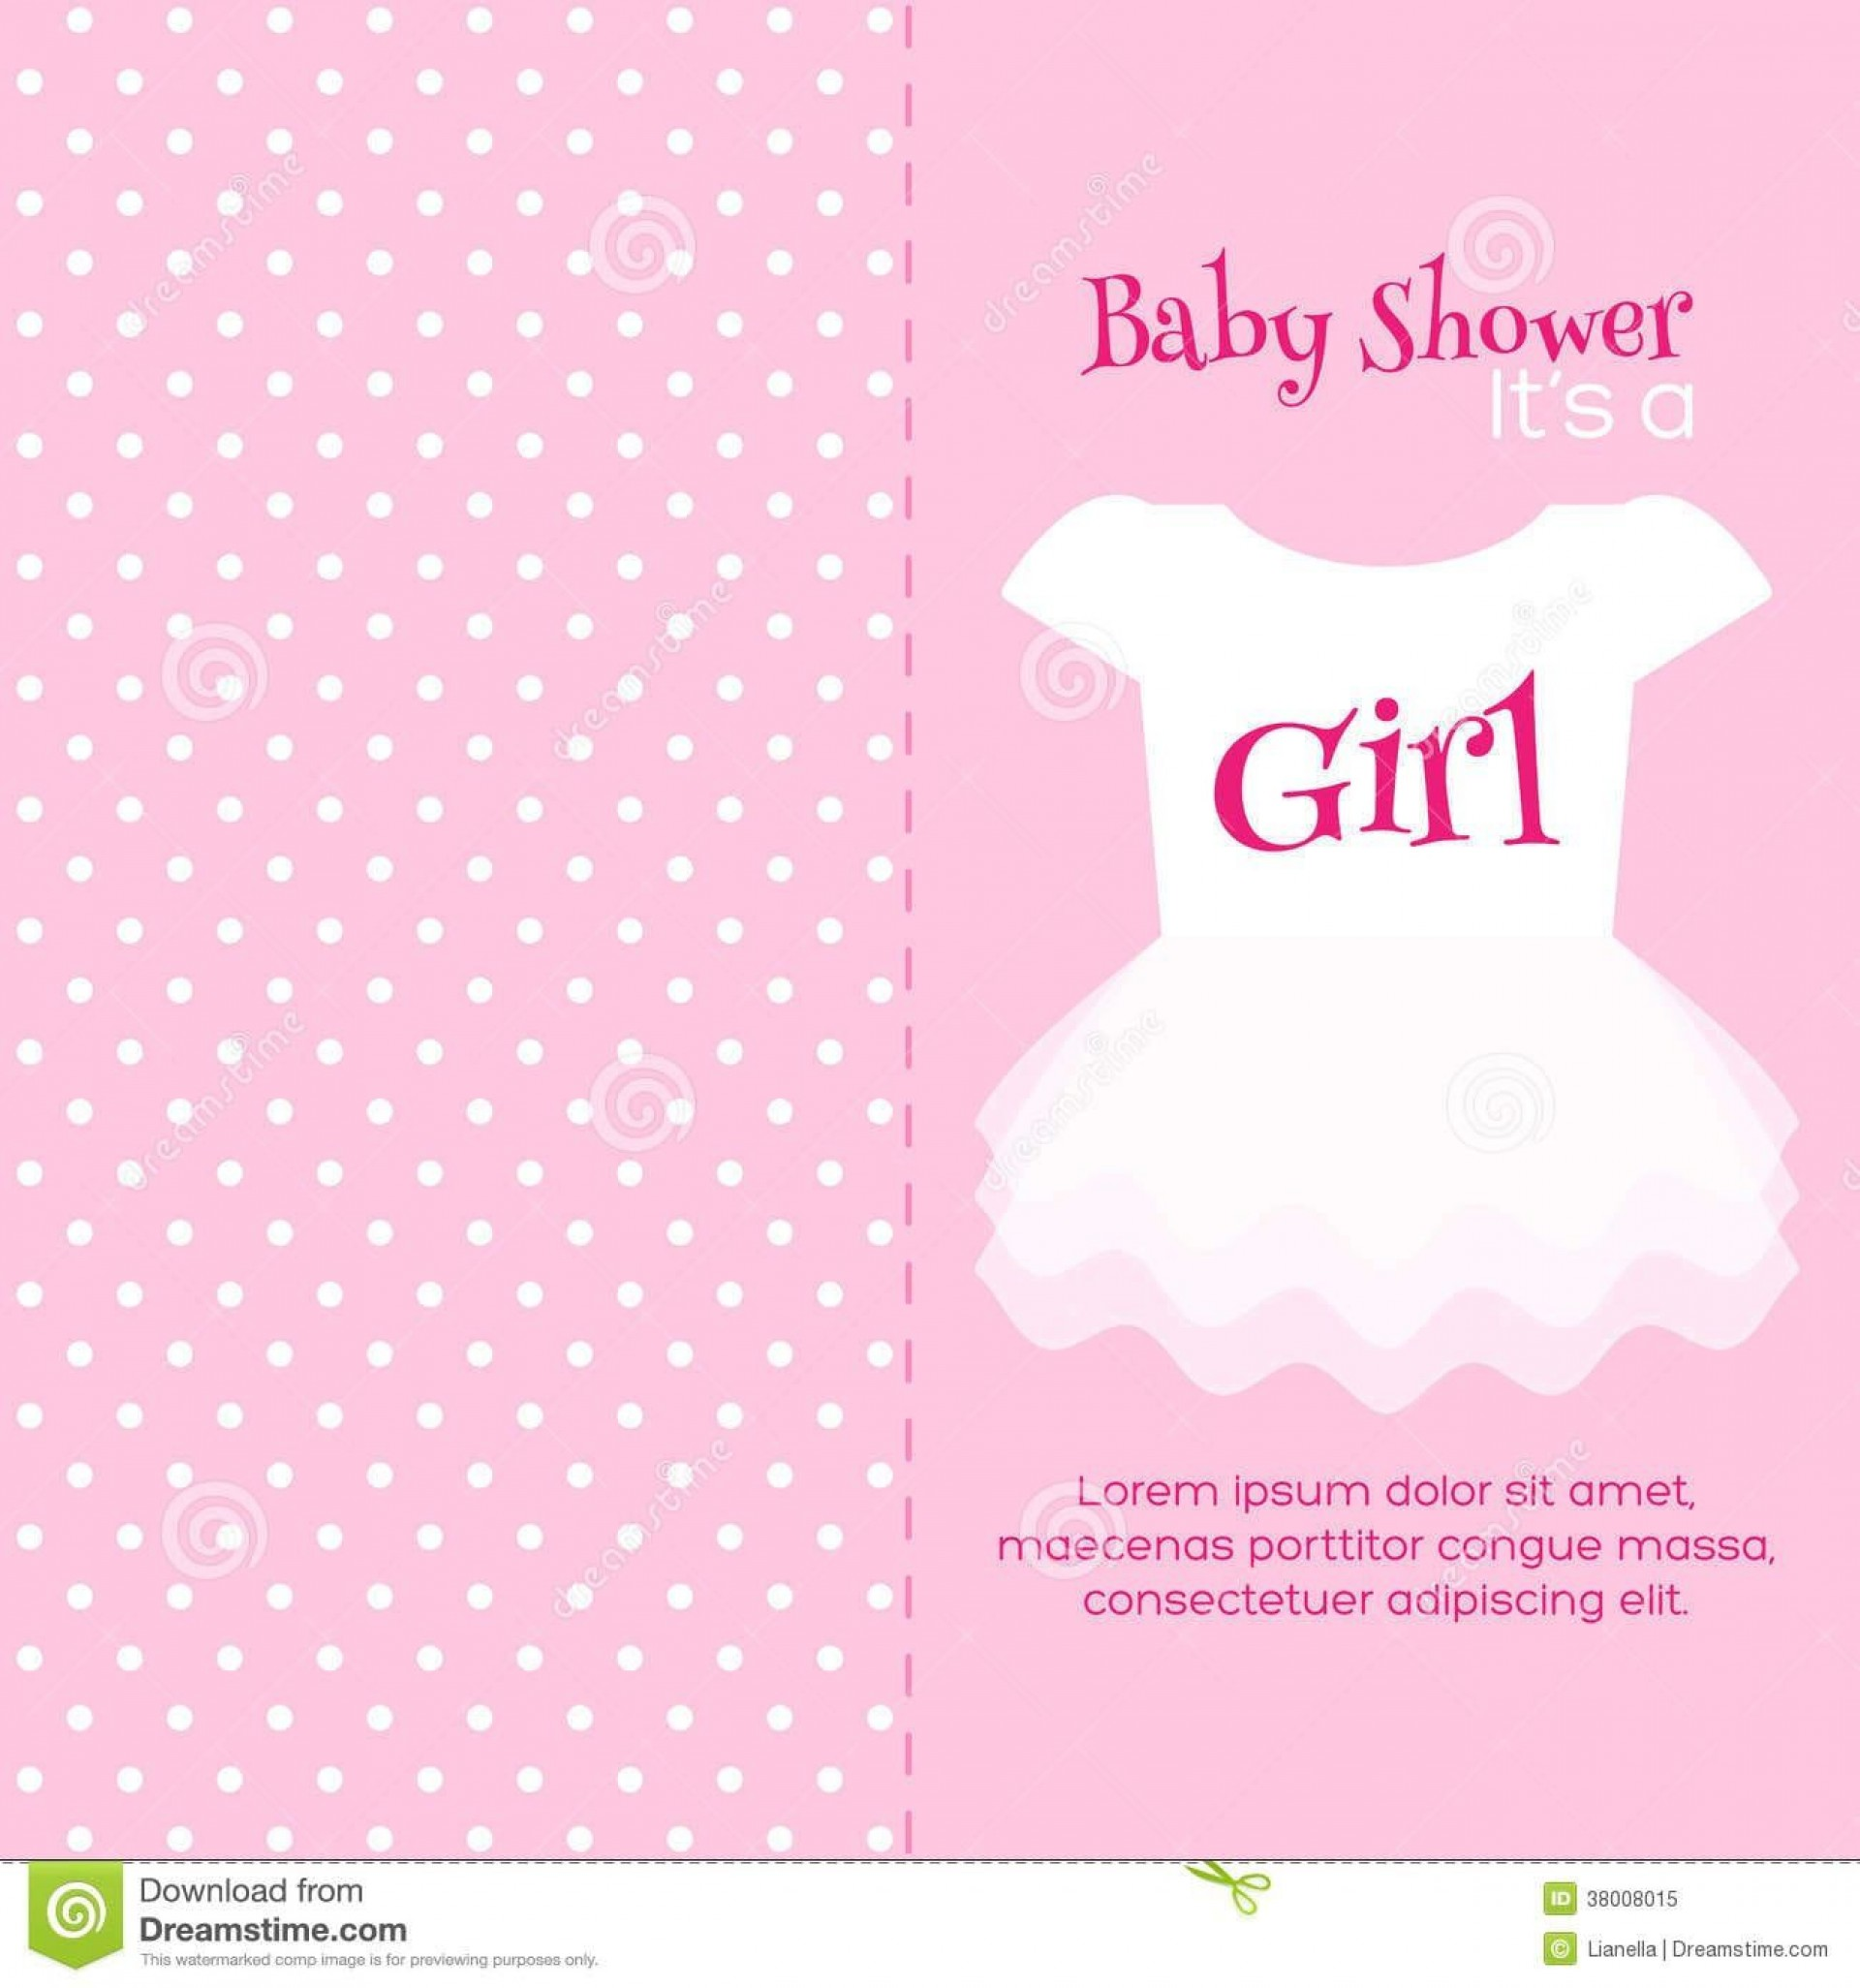 009 Frightening Free Baby Shower Template For Powerpoint Design  Background1920